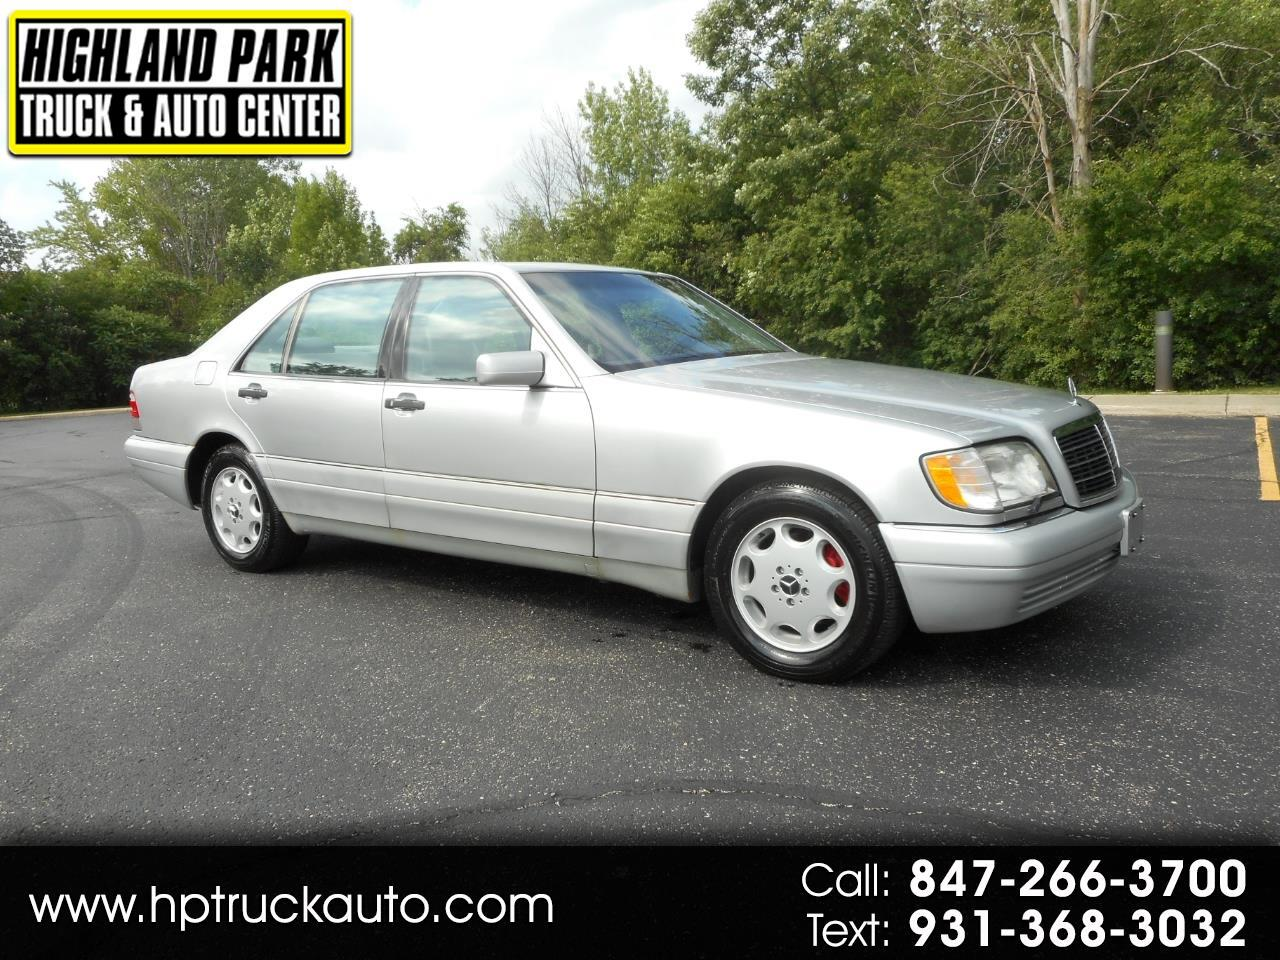 Mercedes-Benz S-Class 1997 for Sale in Highland Park, IL